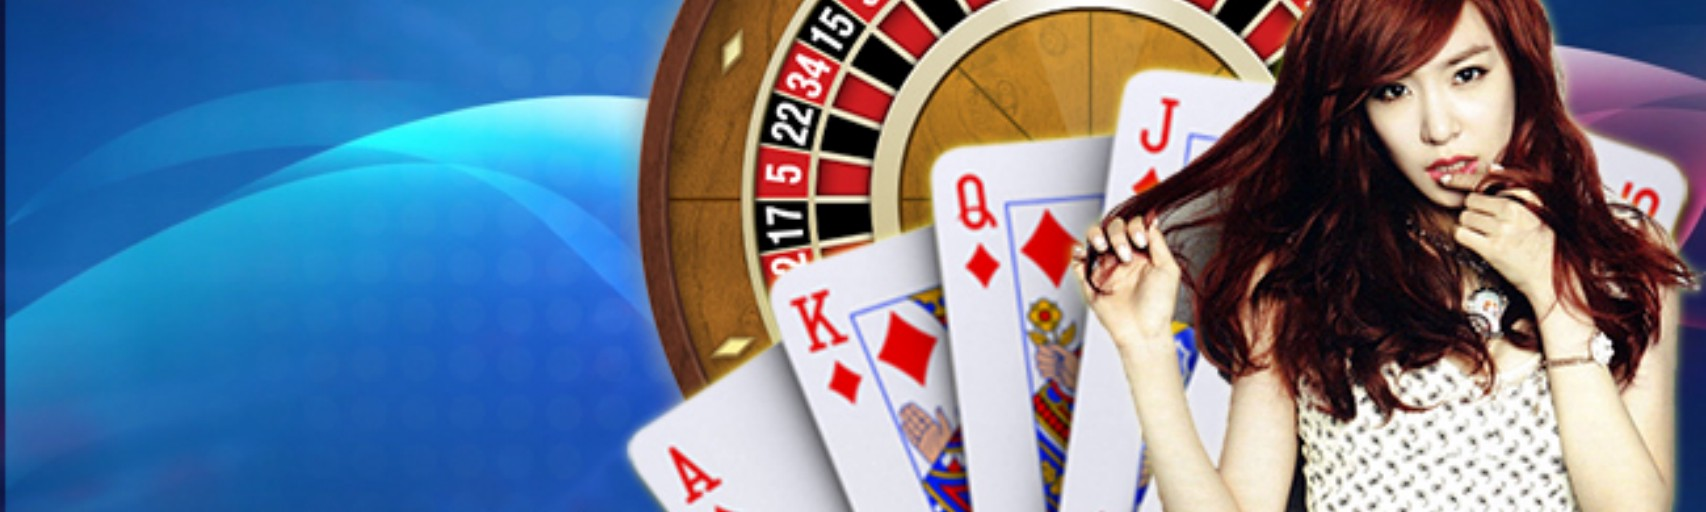 Free Blackjack Games Play For Fun Now